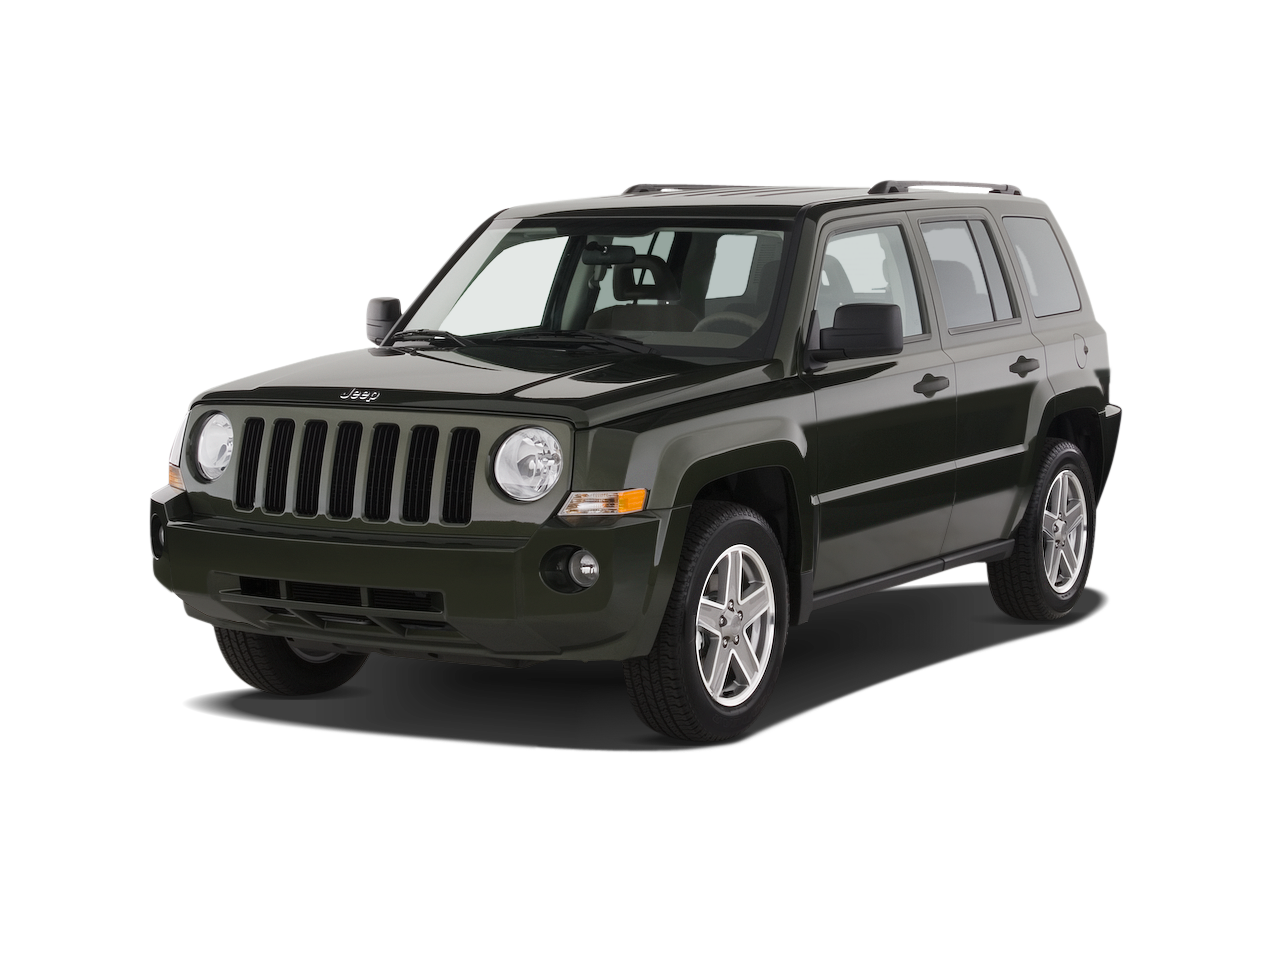 2009 Jeep Patriot Overview - MSN Autos